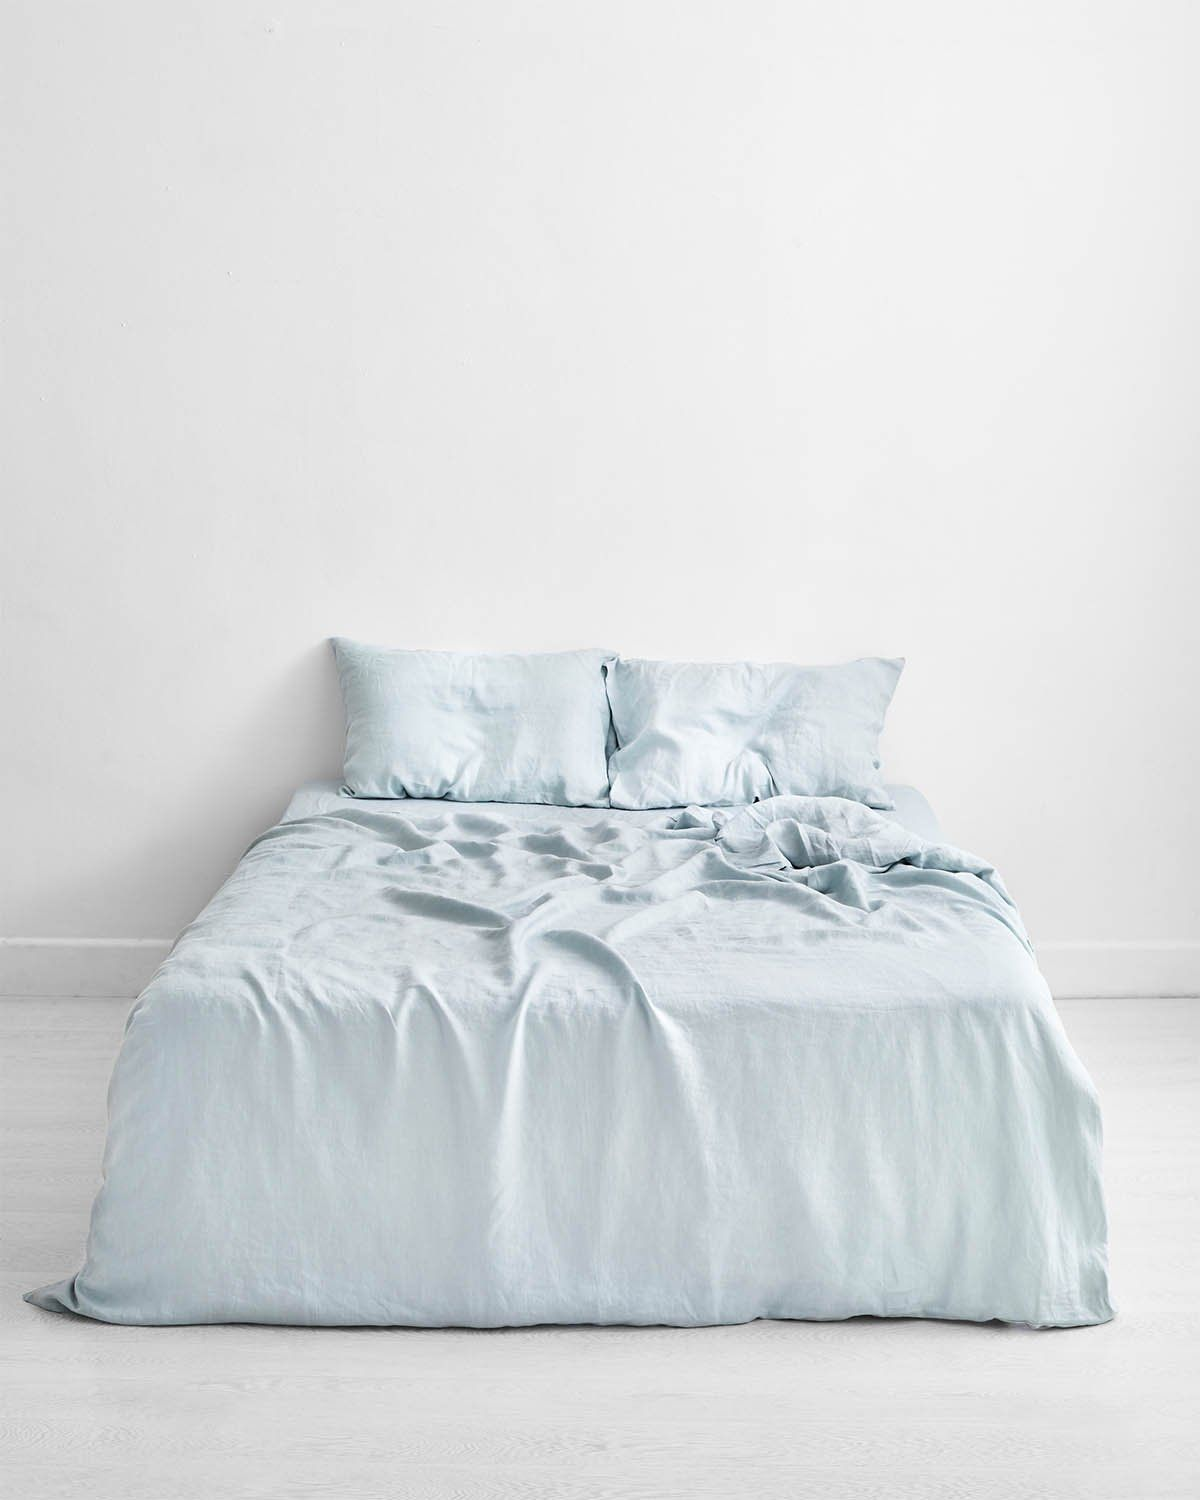 Drift 100 Flax Linen Pillowcases Set Of Two In 2020 Bed Linen Design Bed Linen Sets White Linen Bedding